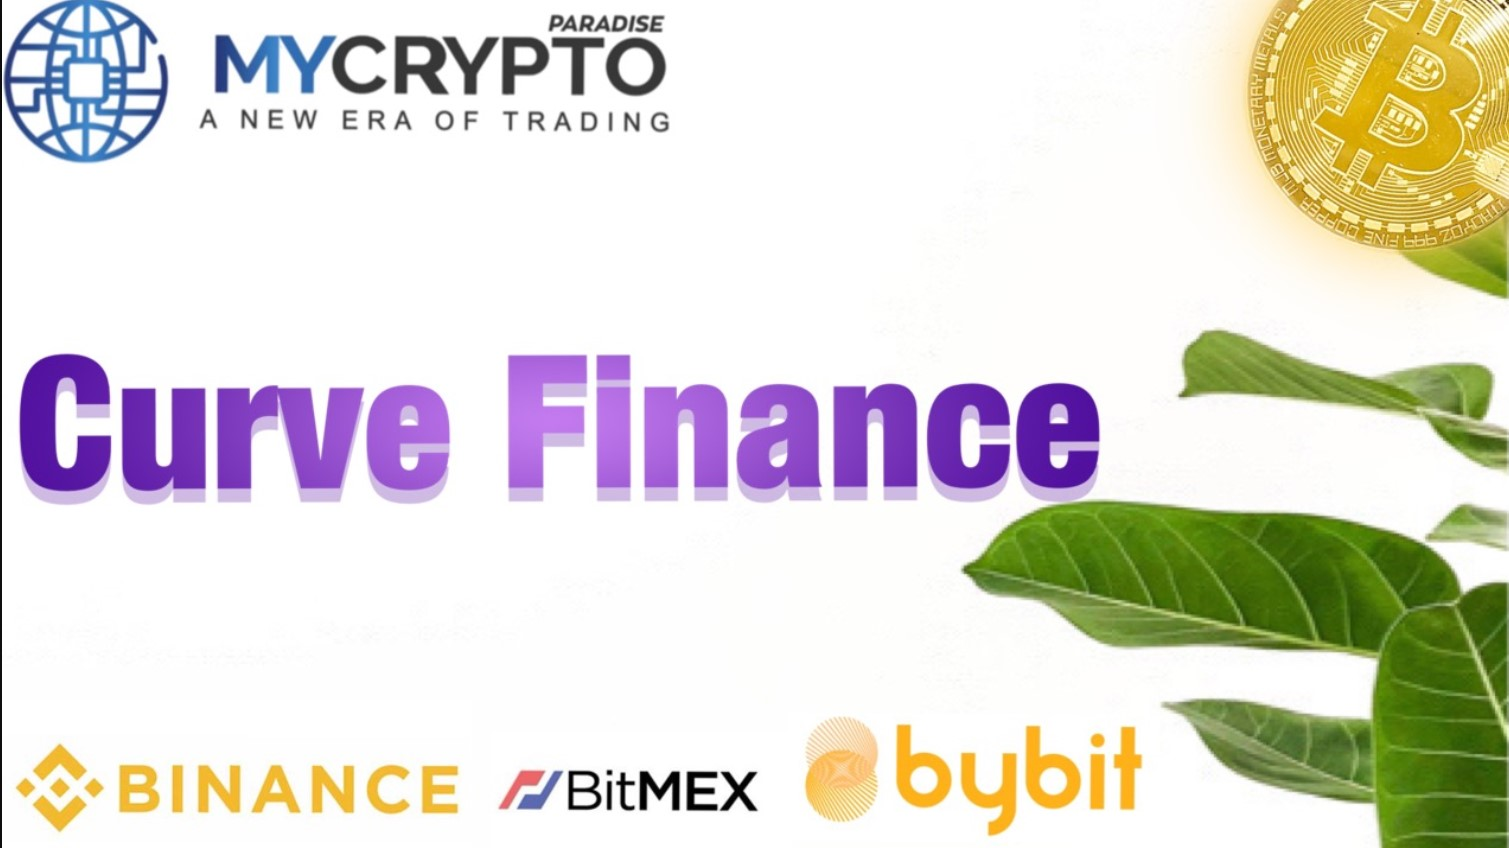 What is Curve Finance?